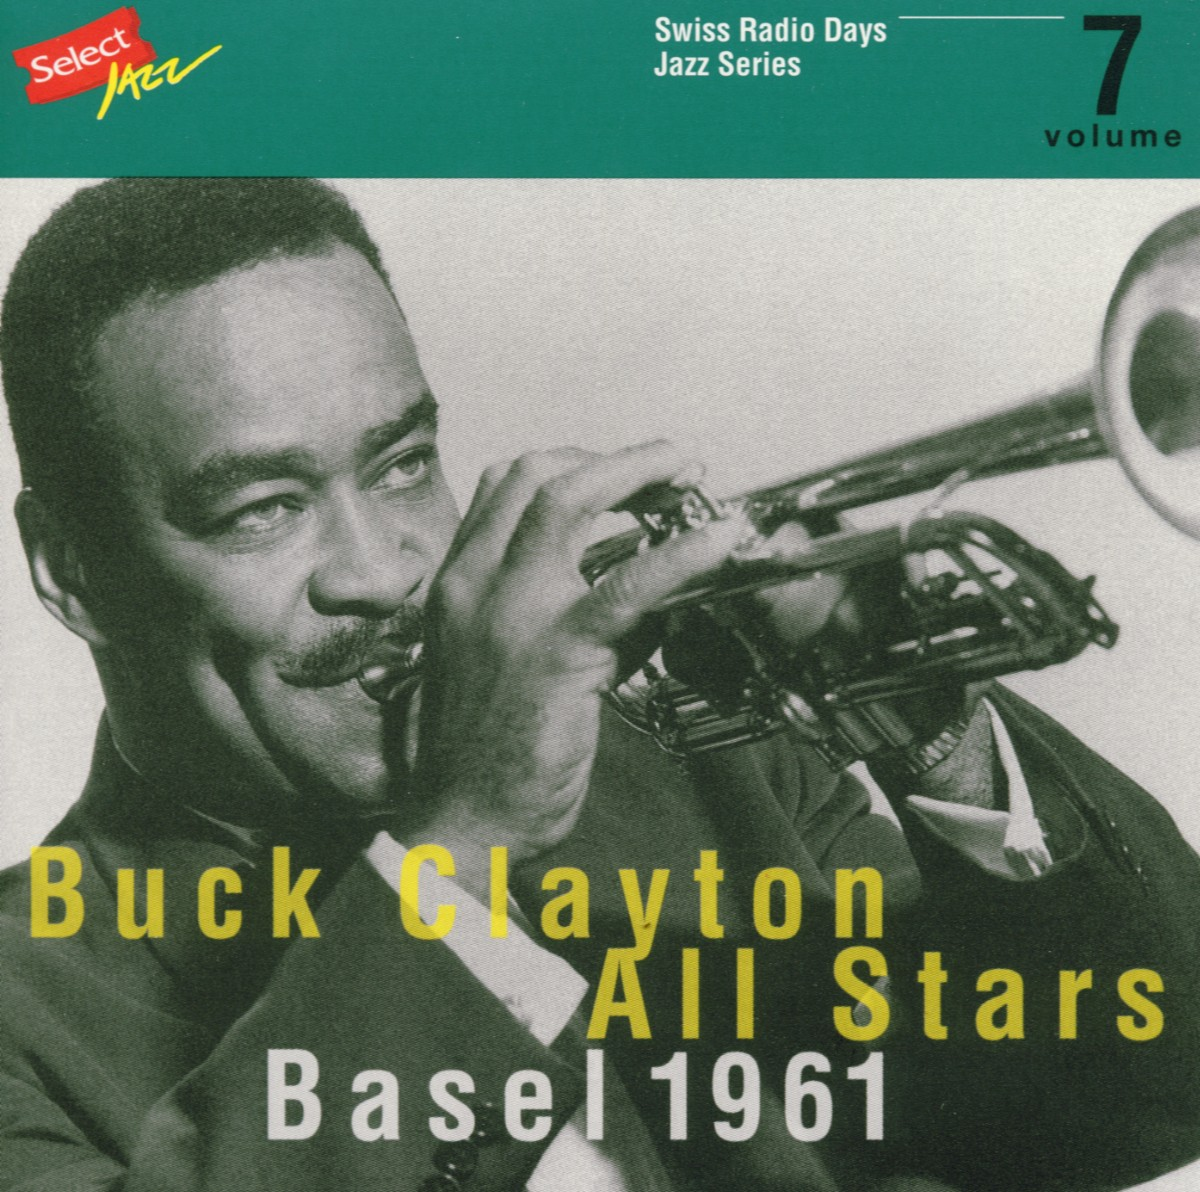 Clayton Buck All Stars - Swiss Radio Days Jazz Series, Vol. 7: Basel 1961